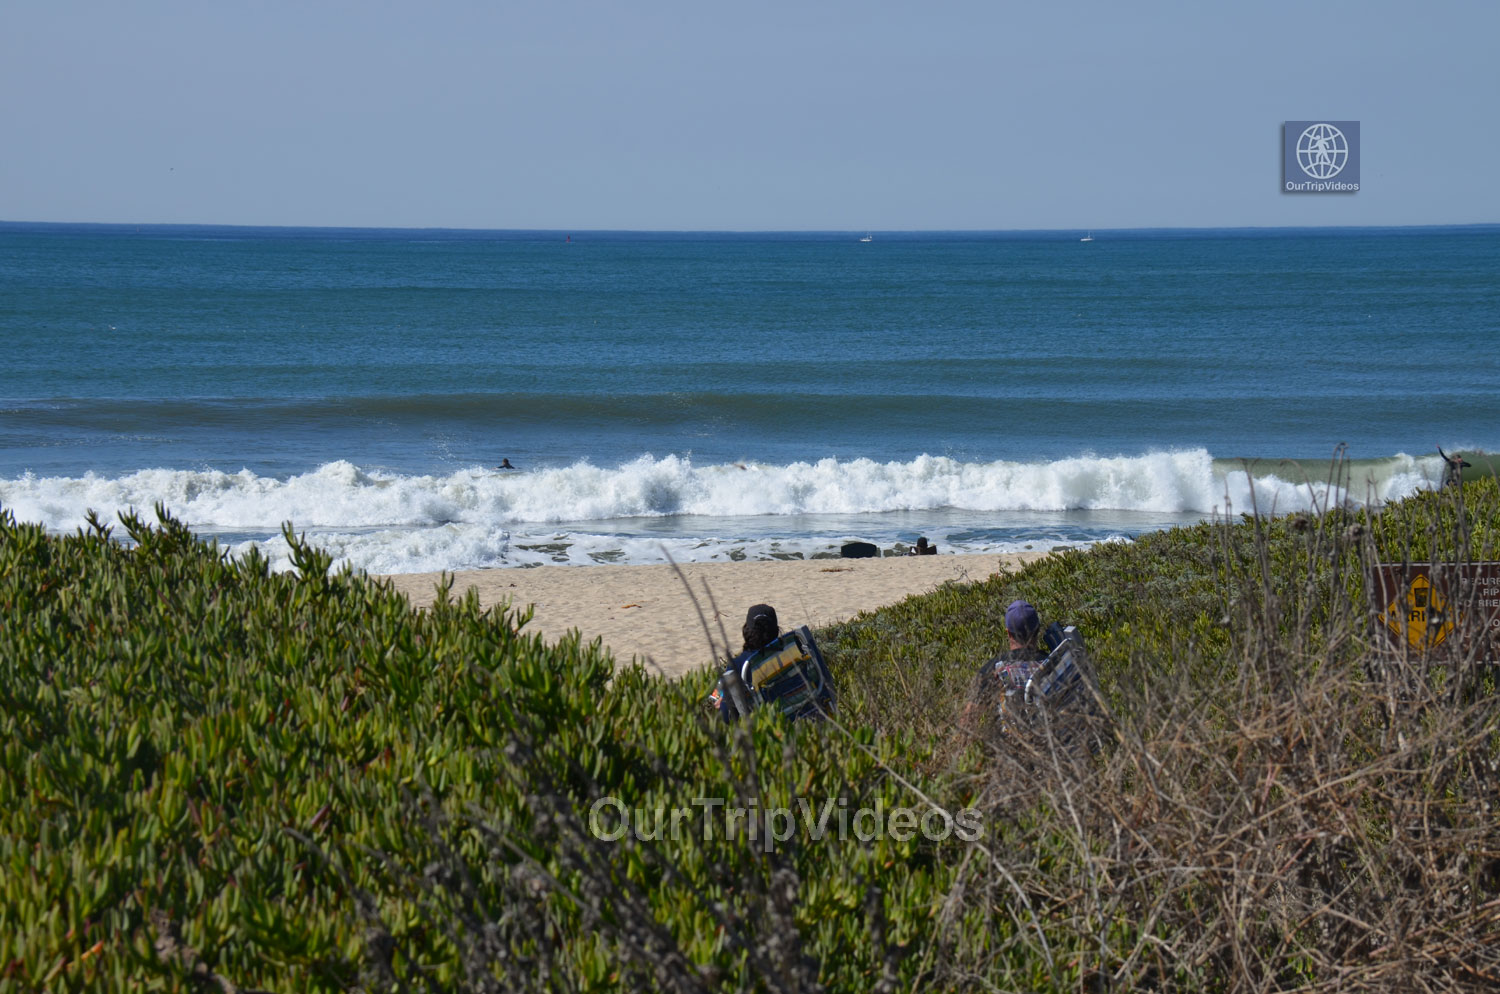 State Beach(Francis Beach), Half Moon Bay, CA, USA - Picture 2 of 25